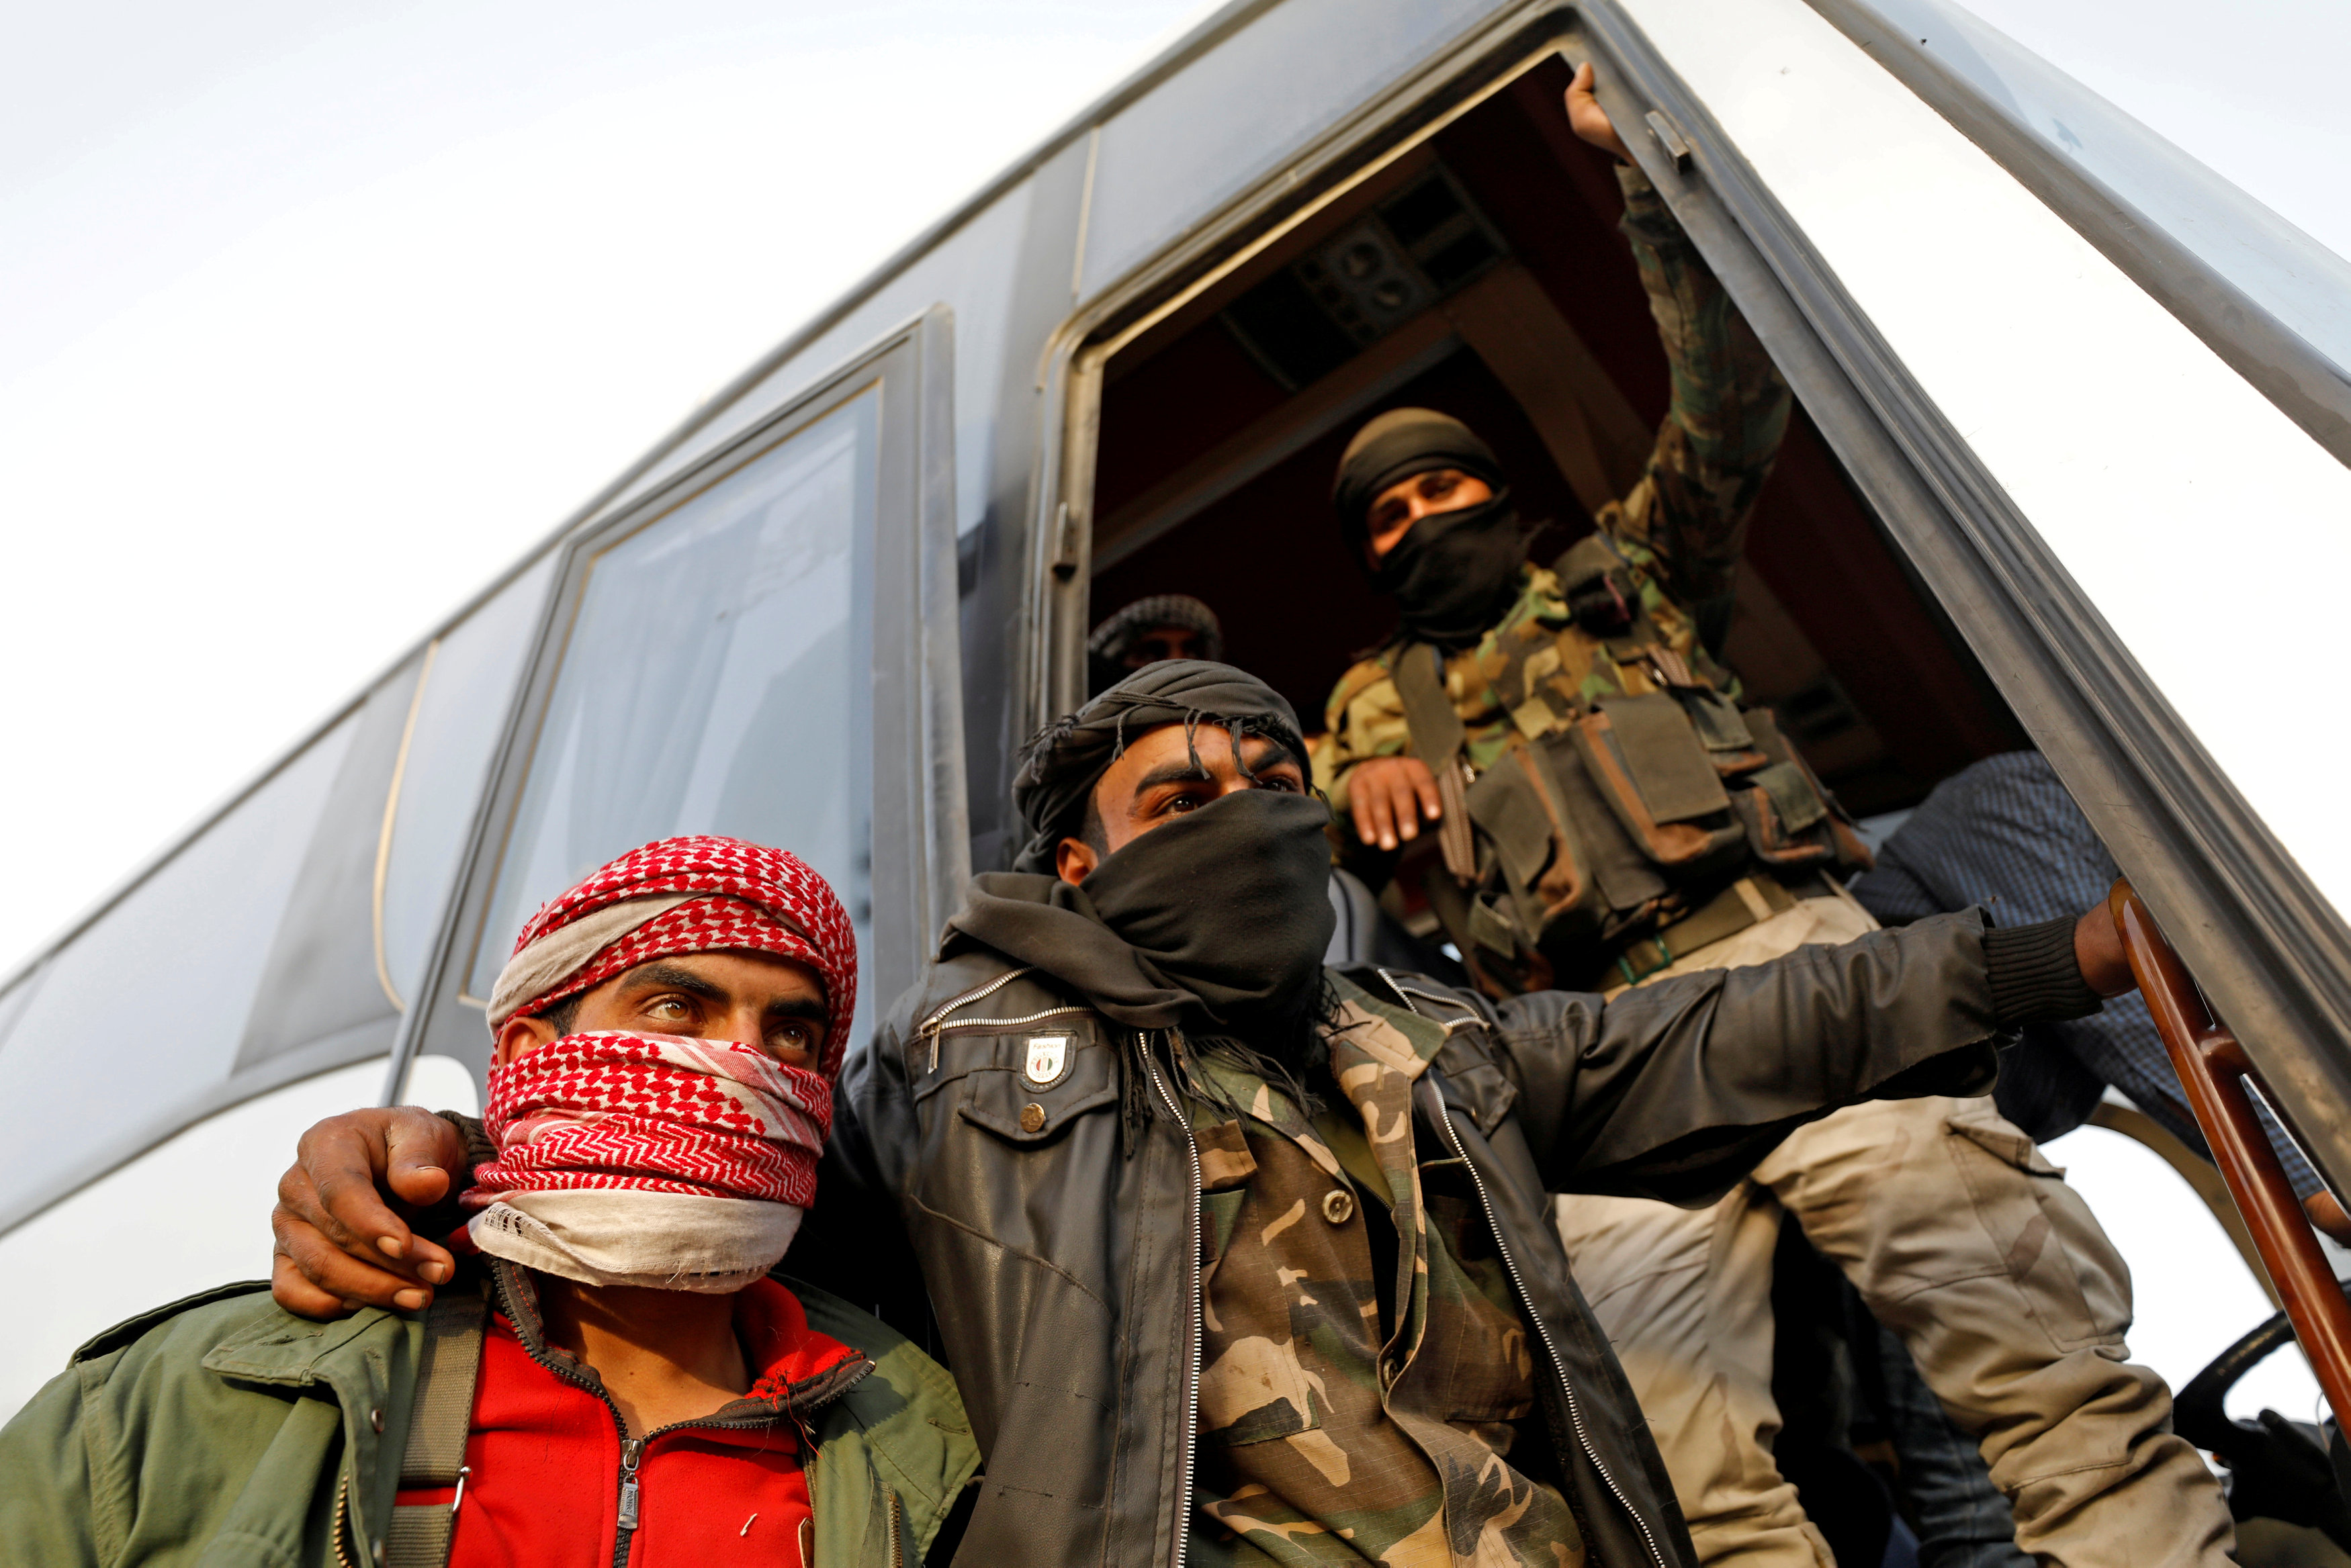 FILE PHOTO: Rebel fighters gesture as they stand next to a bus before their evacuation, at Harasta highway outside Jobar, in Damascus, Syria March 26, 2018. REUTERS/Omar Sanadiki/File Photo